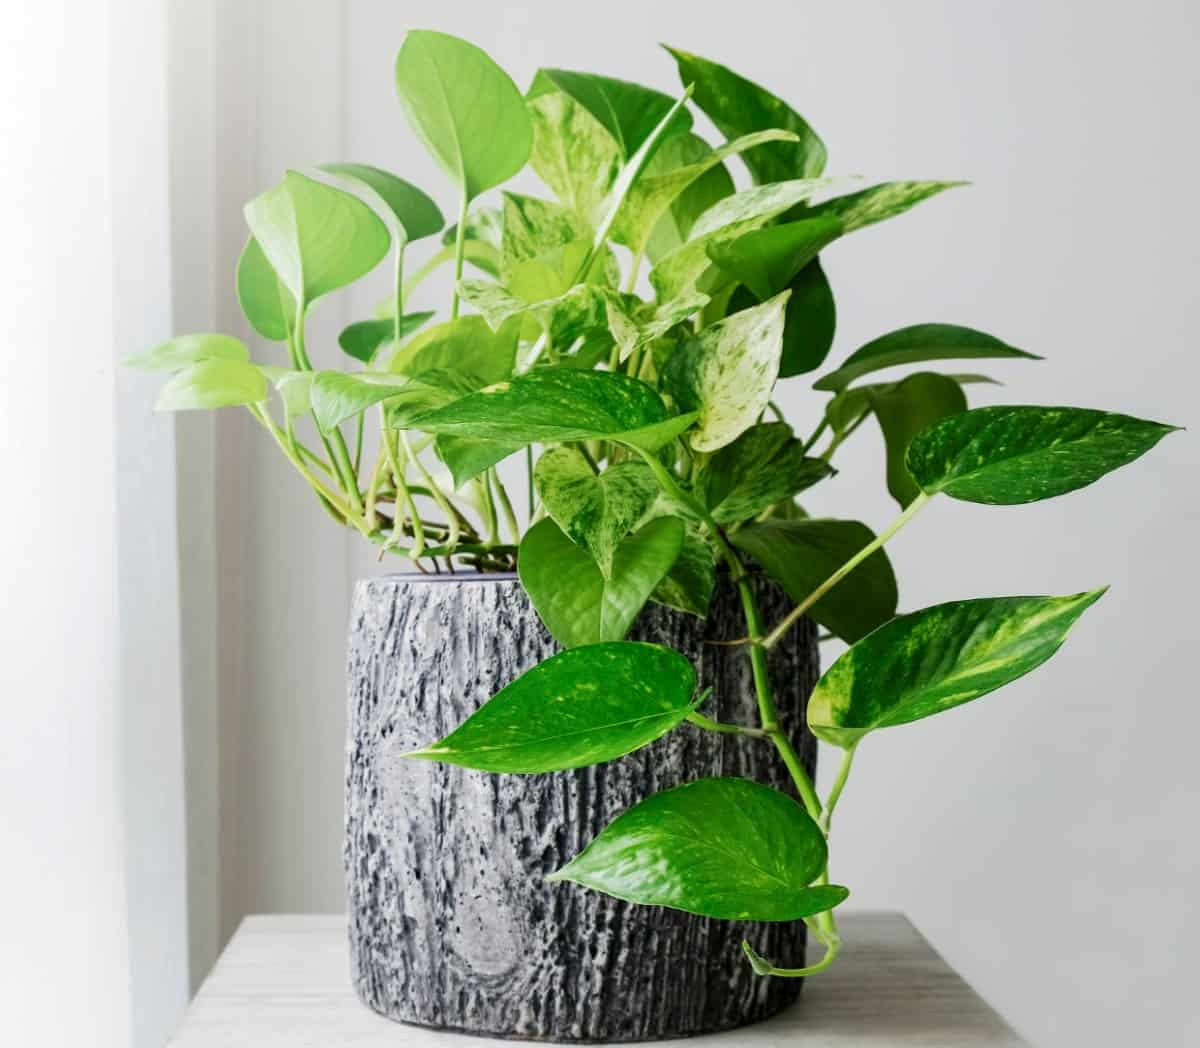 Pothos is a popular vining indoor plant.